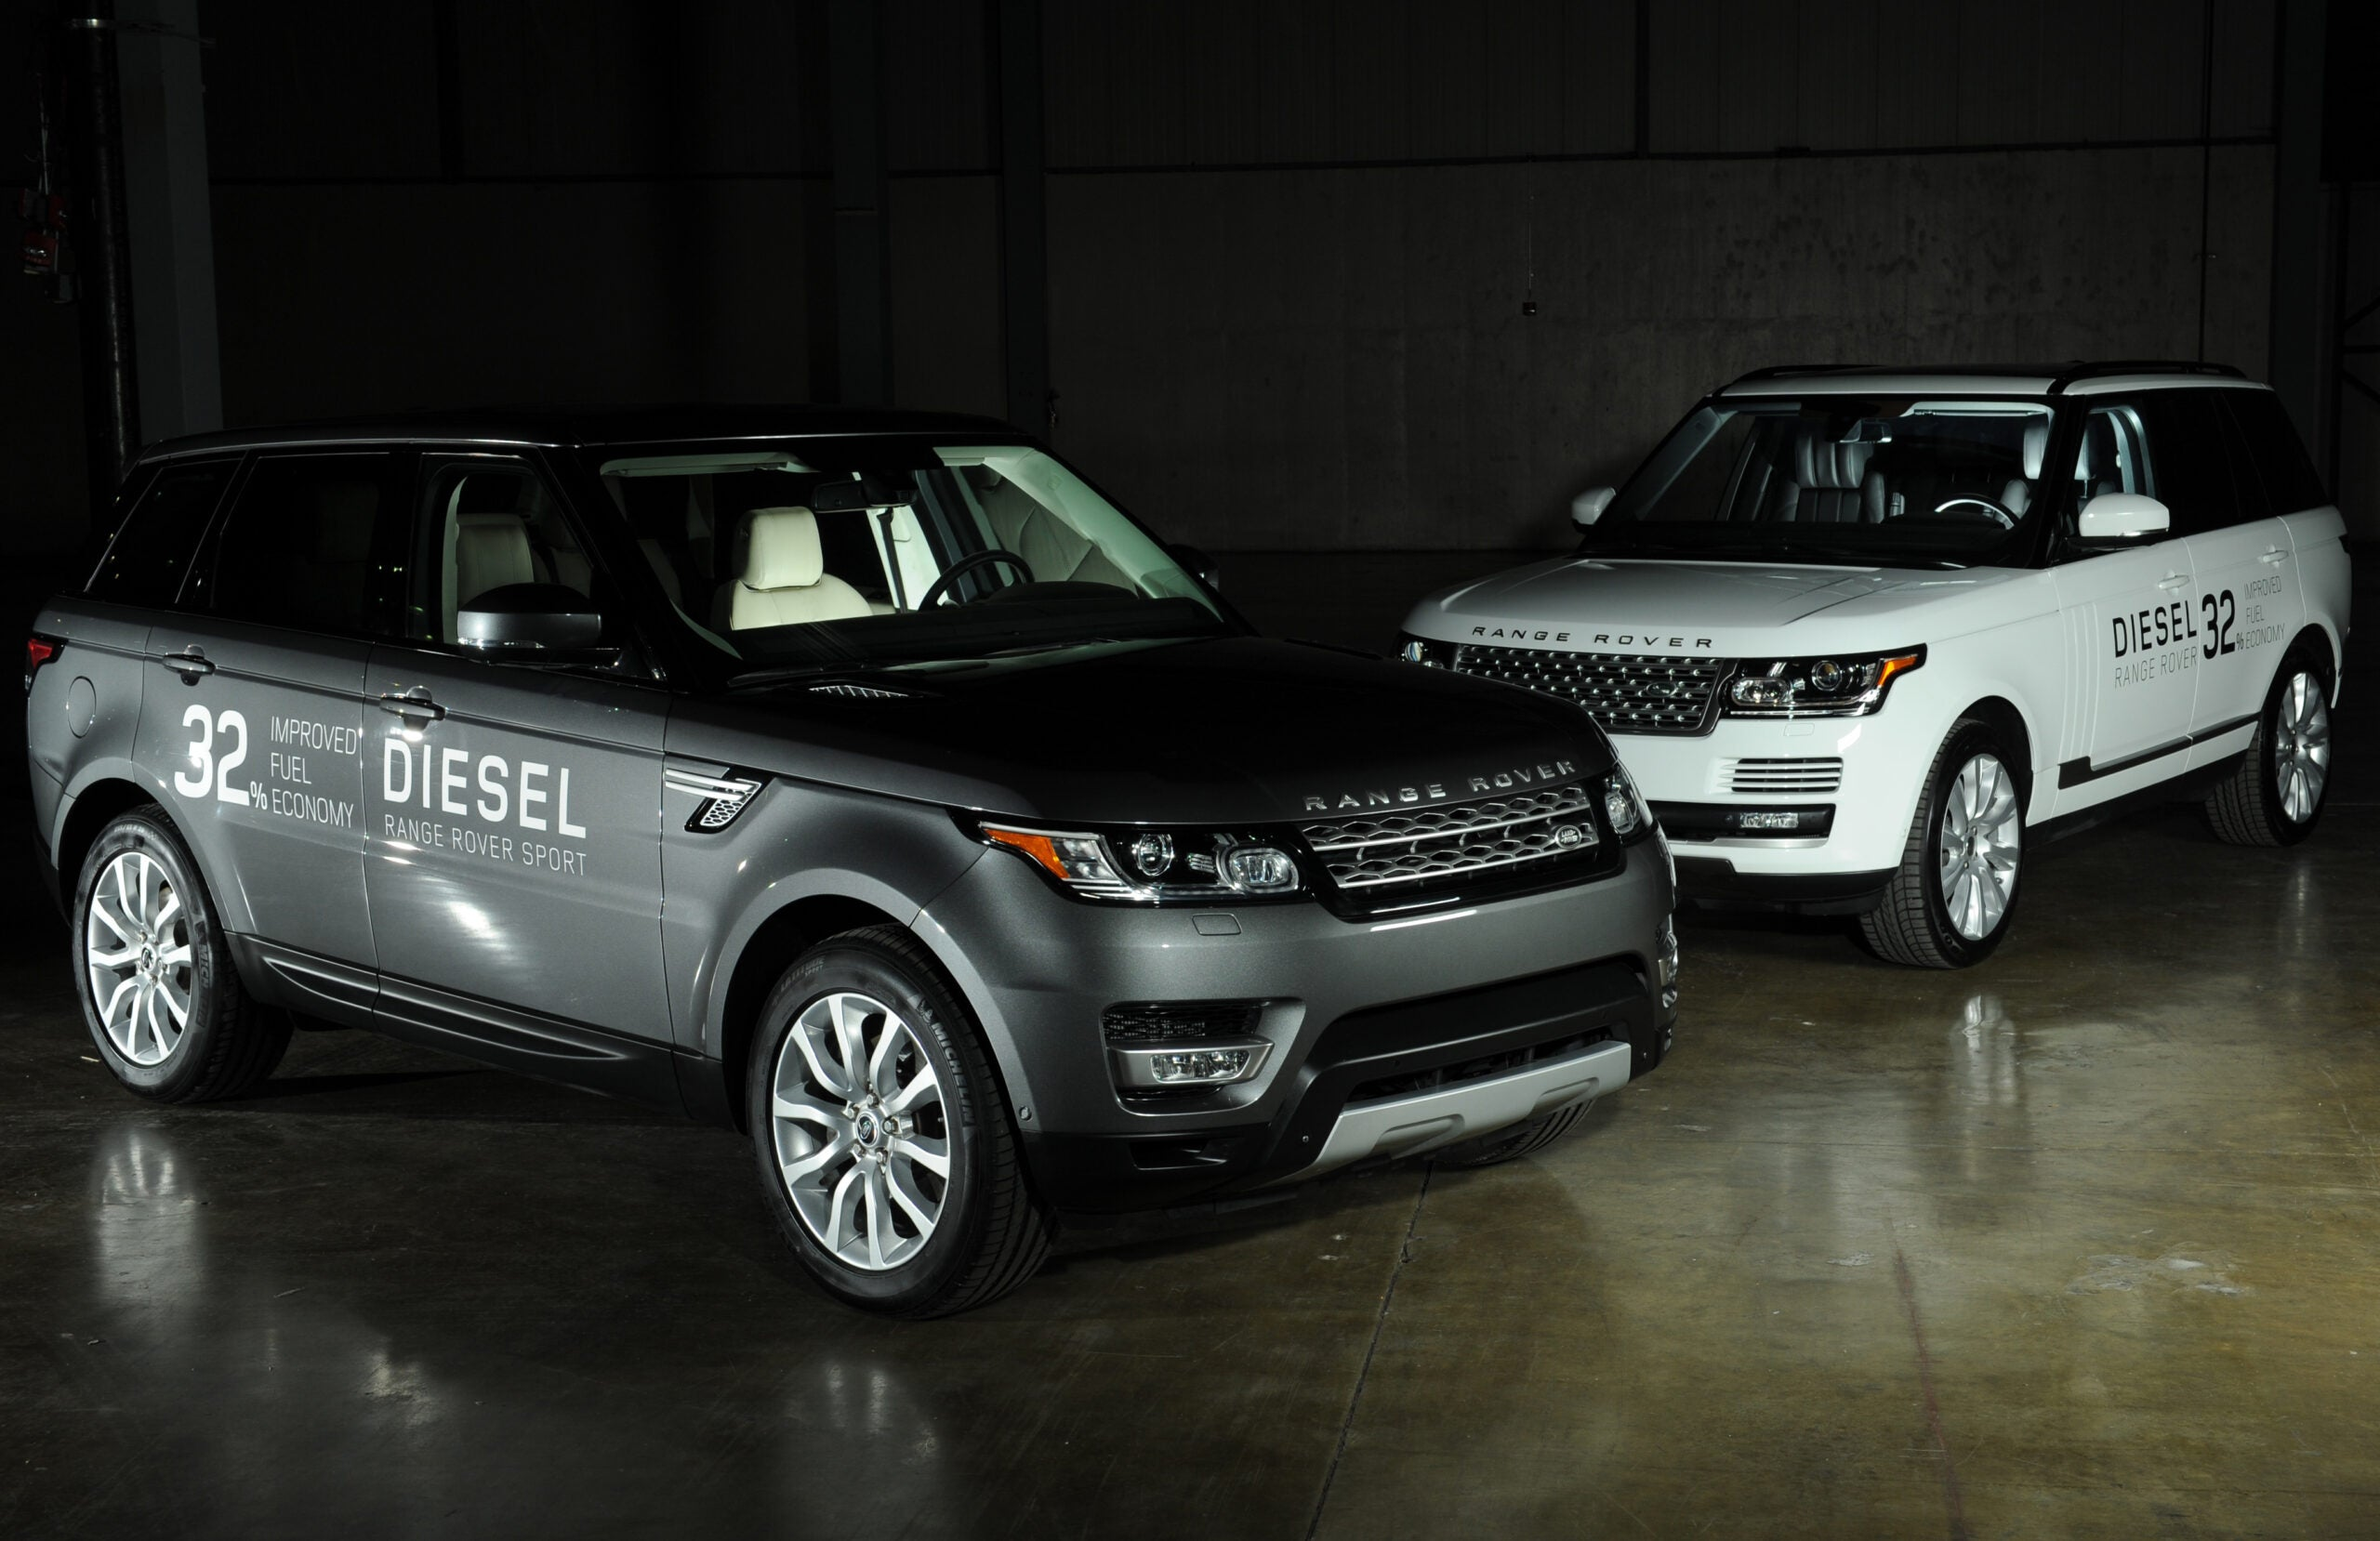 2015 Detroit Auto Show: Land Rover Will Bring Two Diesel SUVs To The U.S.